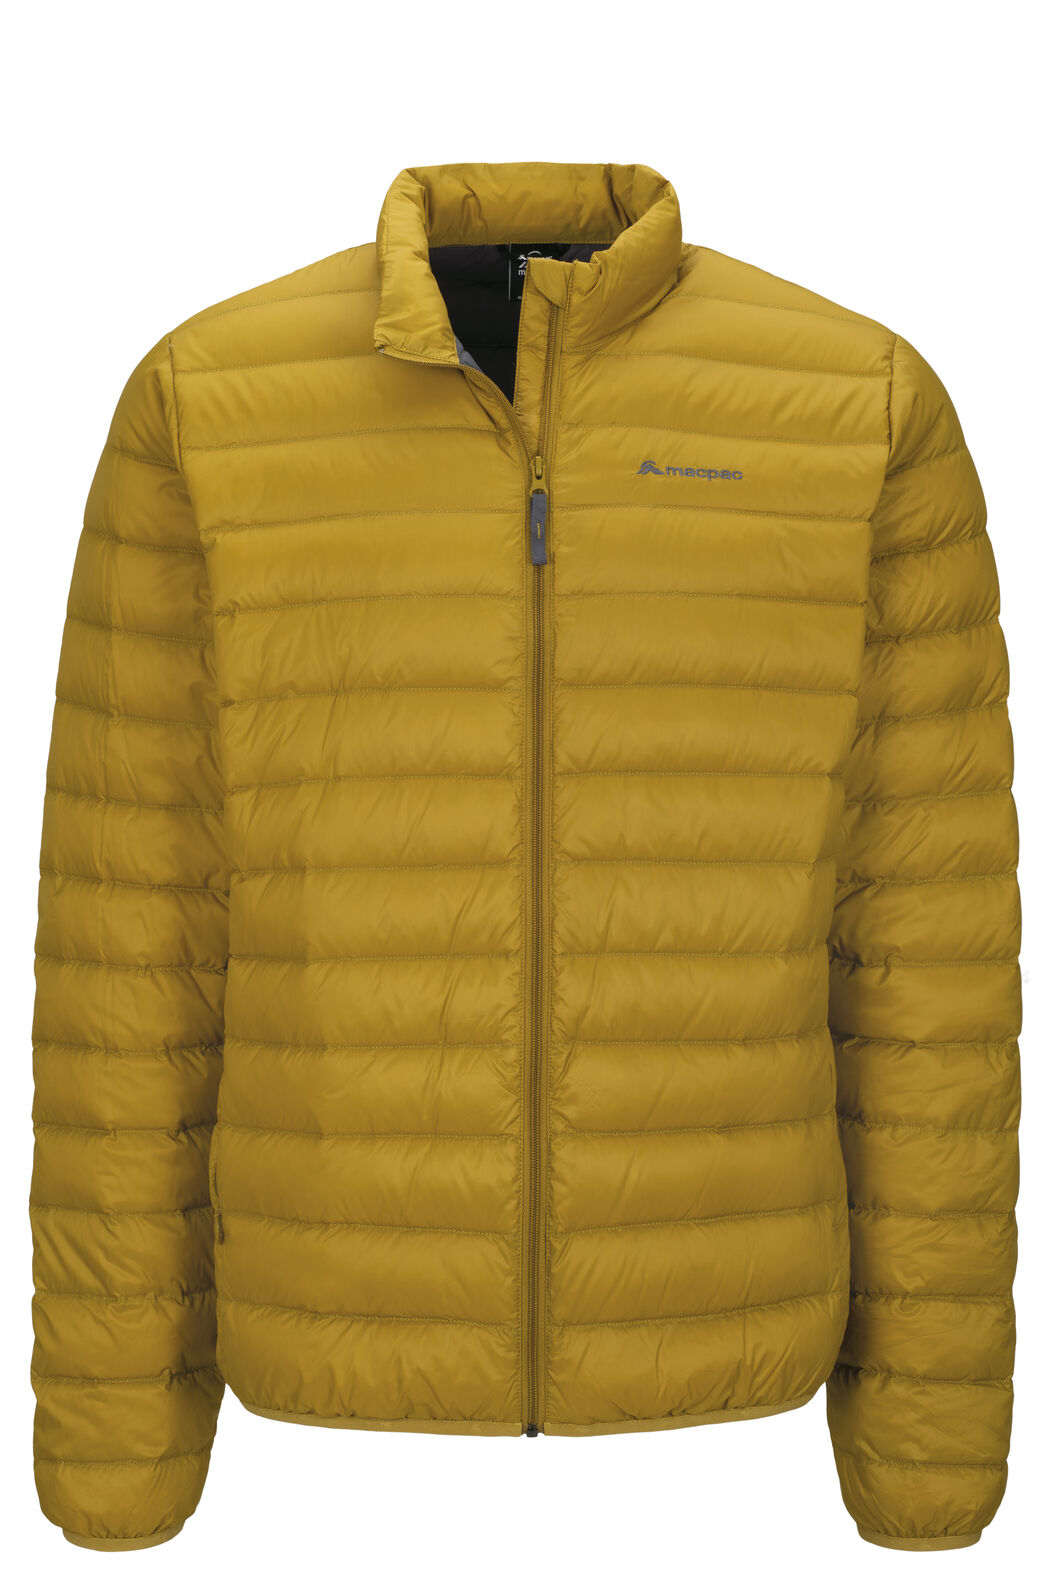 Men's Uber Light Down Jacket, Dried Tussock, hi-res